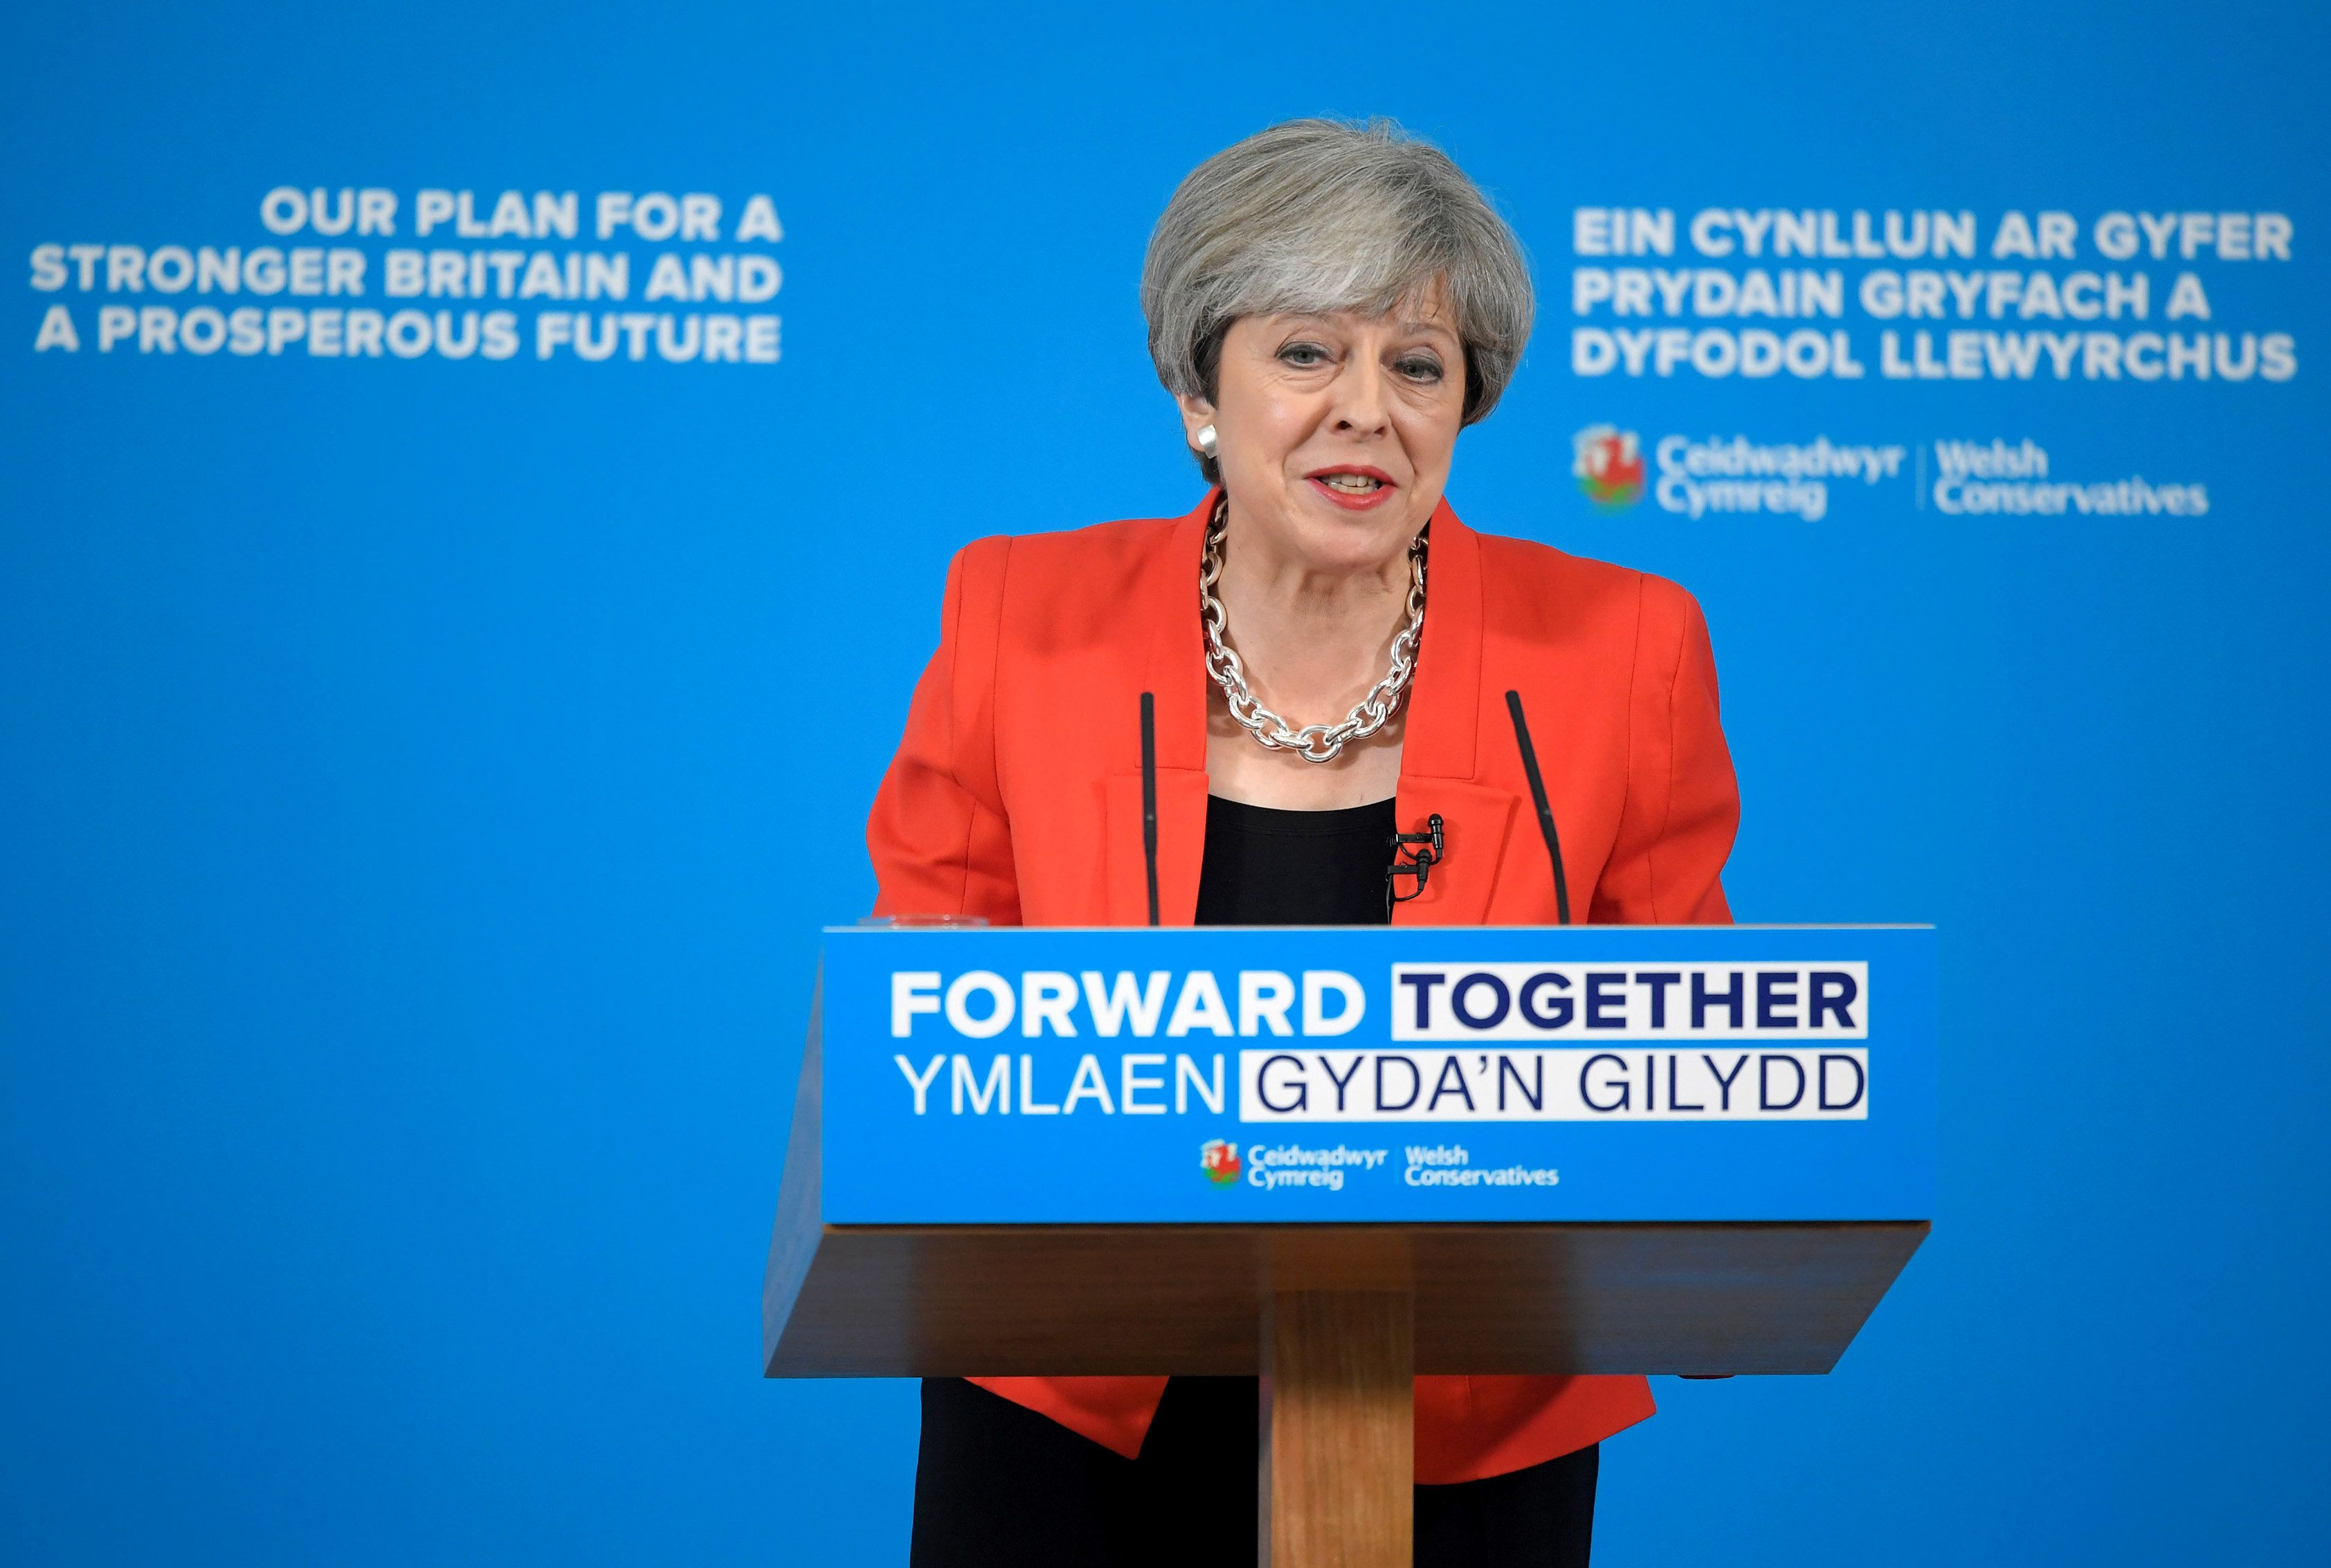 Migration And Economic Growth Down As Election Campaign